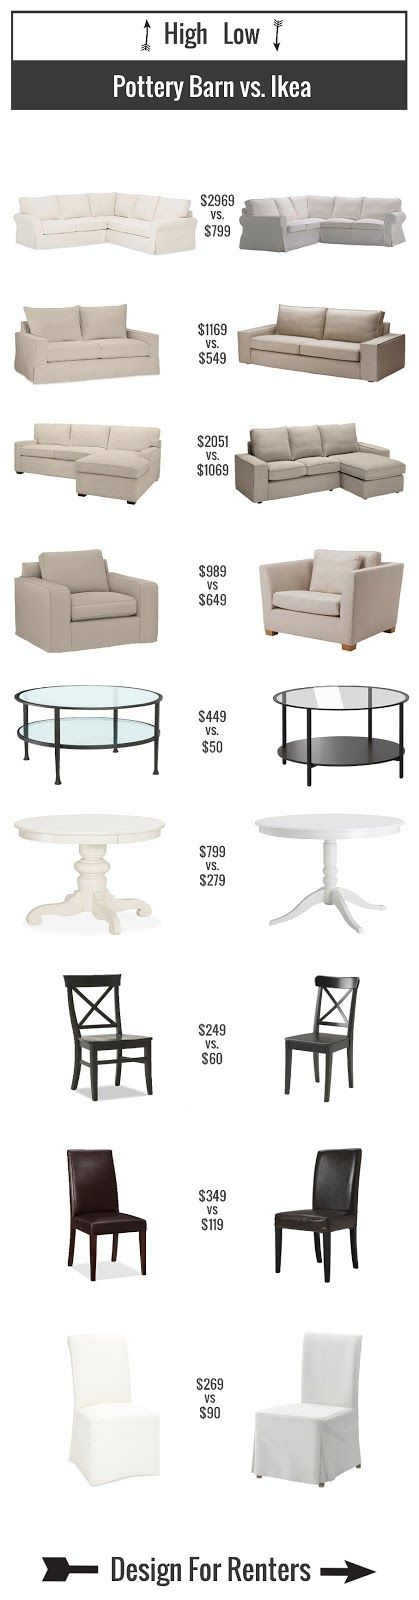 High Low Projects! Pottery Barn Vs. Ikea!! #ikea #potterybarn